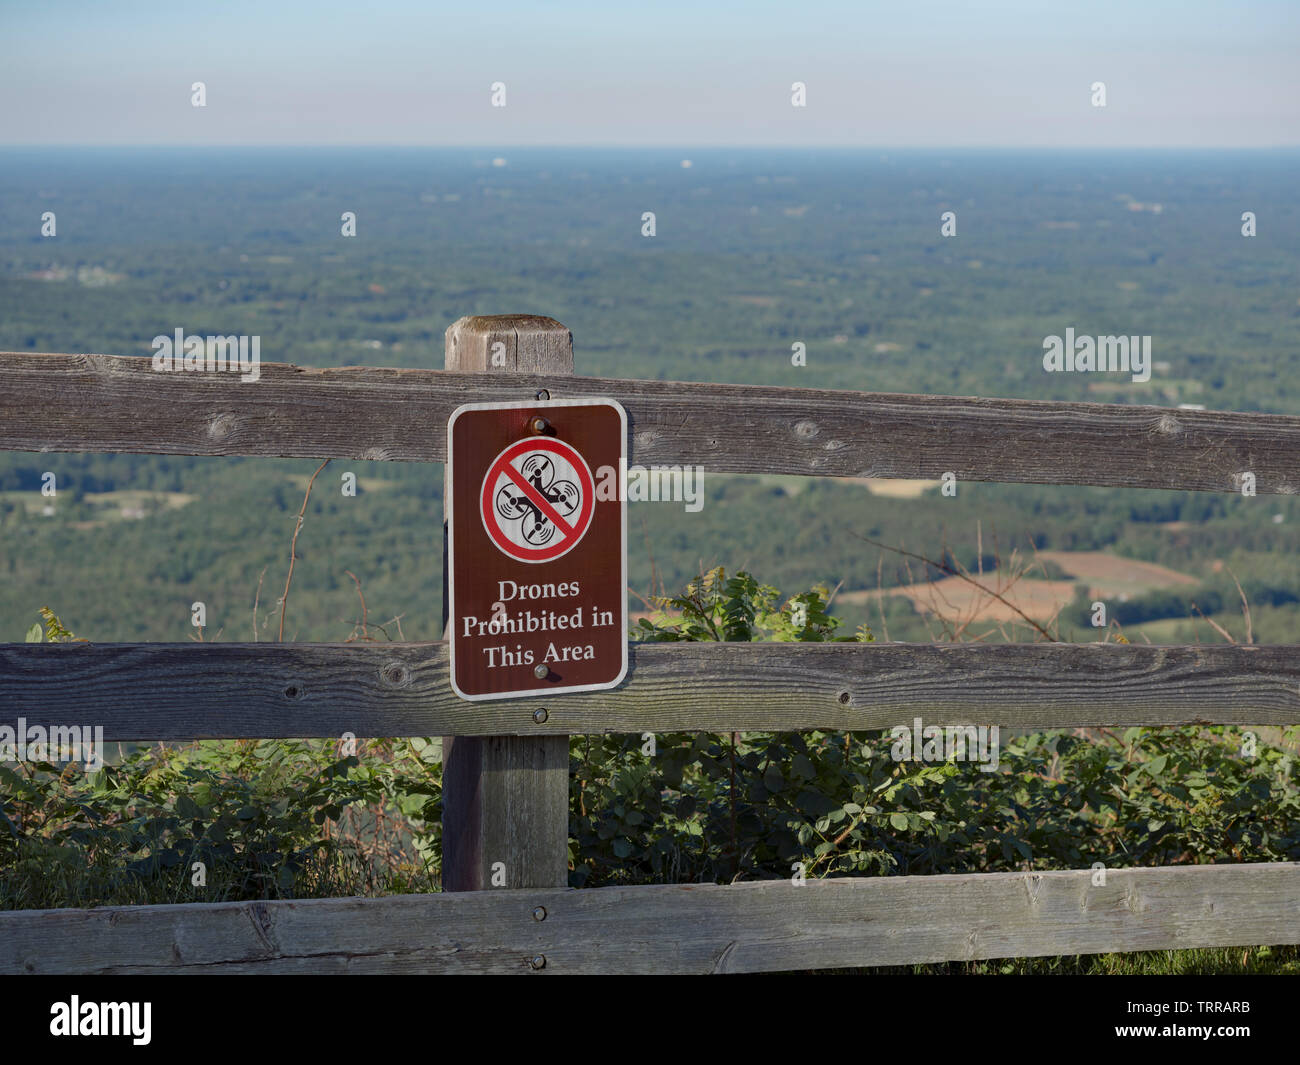 Drones Prohibited sign on fence in North Carolina state park. Pilot Mountain State Park, NC. Drone regulation. - Stock Image